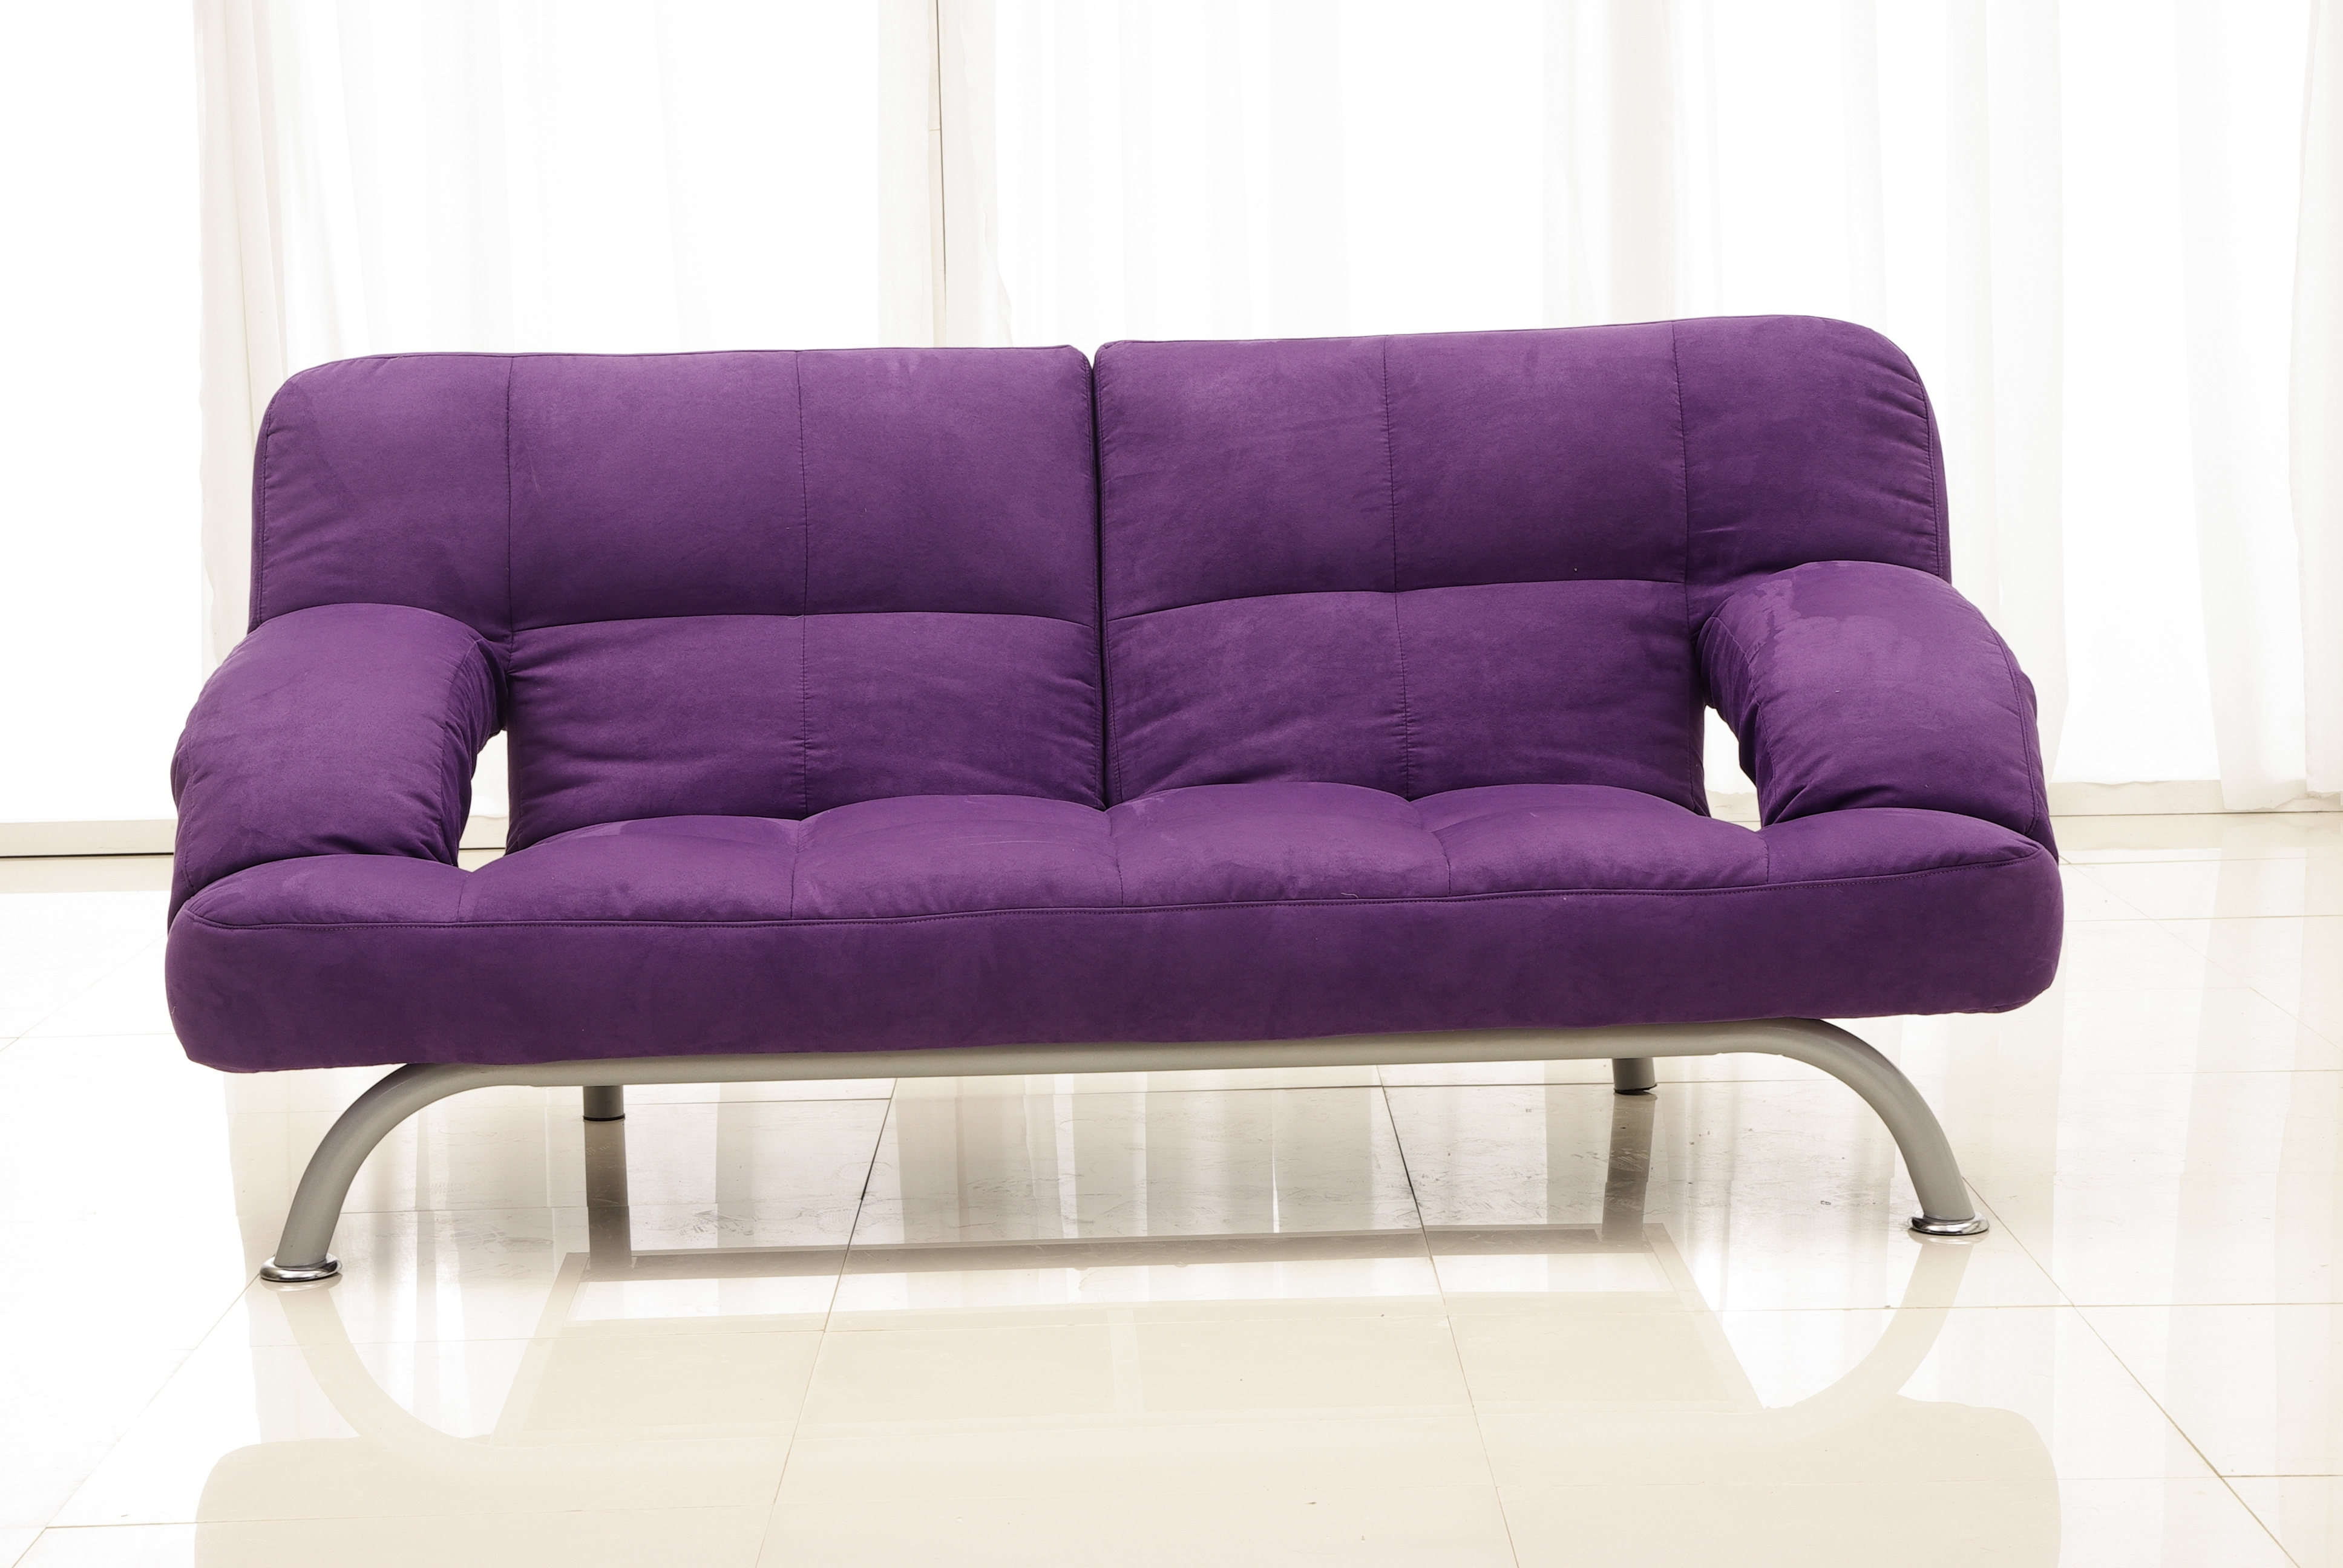 Most Recent Velvet Purple Sofas With Purple Leather Sofa With Backrest And Stainless Steel Base On (View 10 of 20)